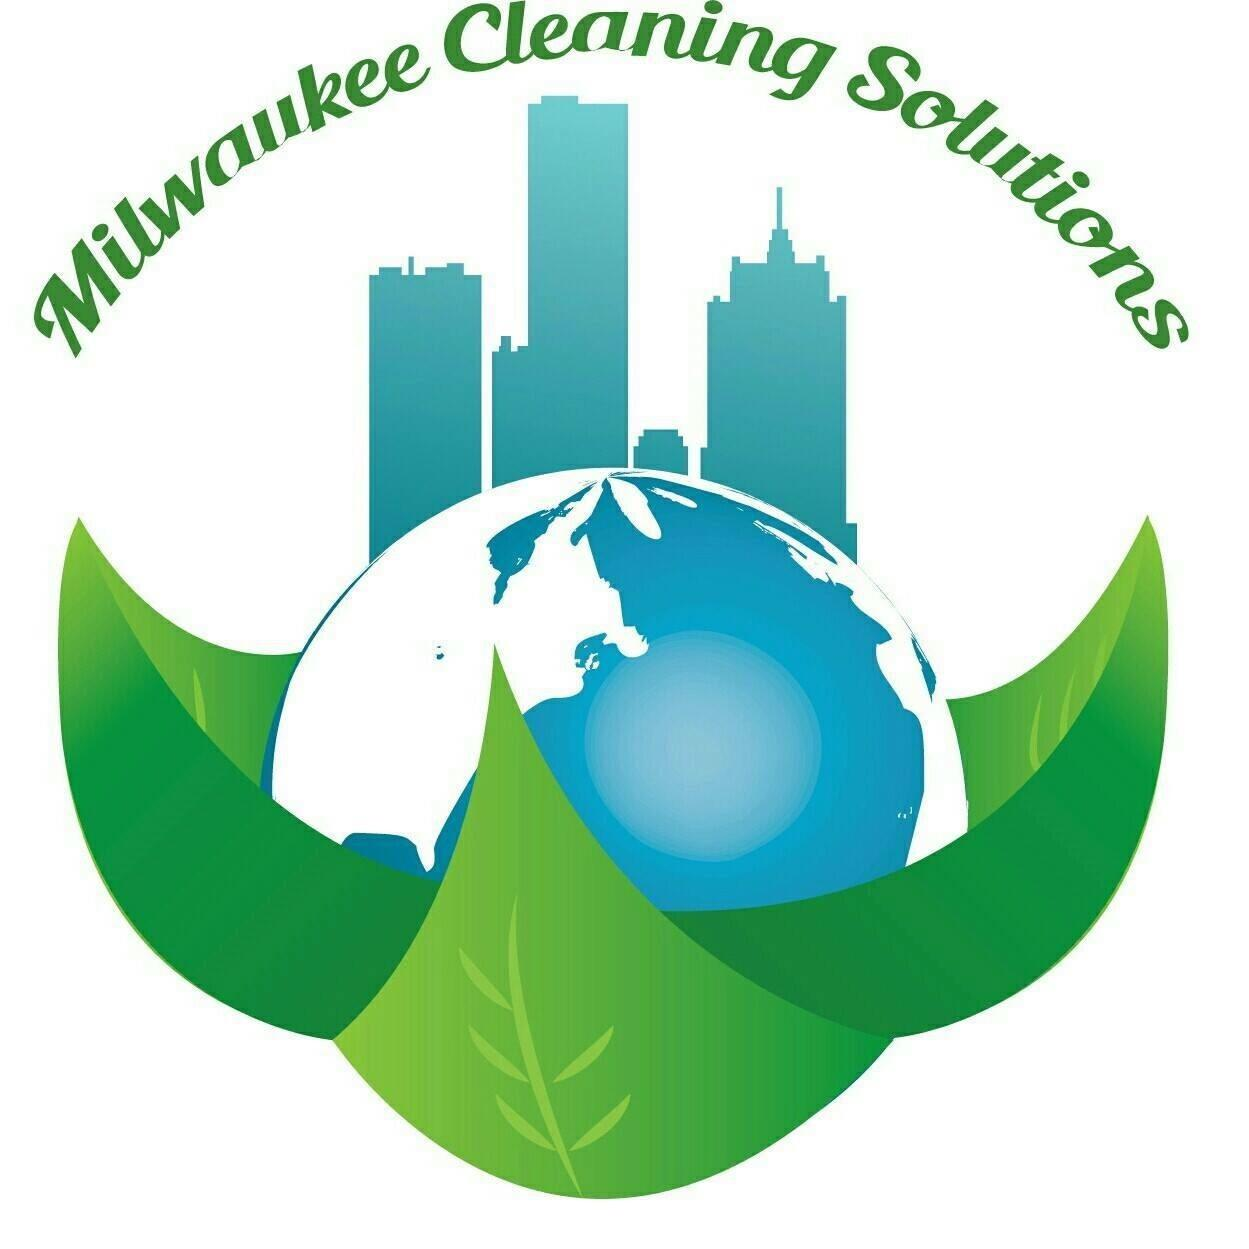 Milwaukee Cleaning Solutions LLC